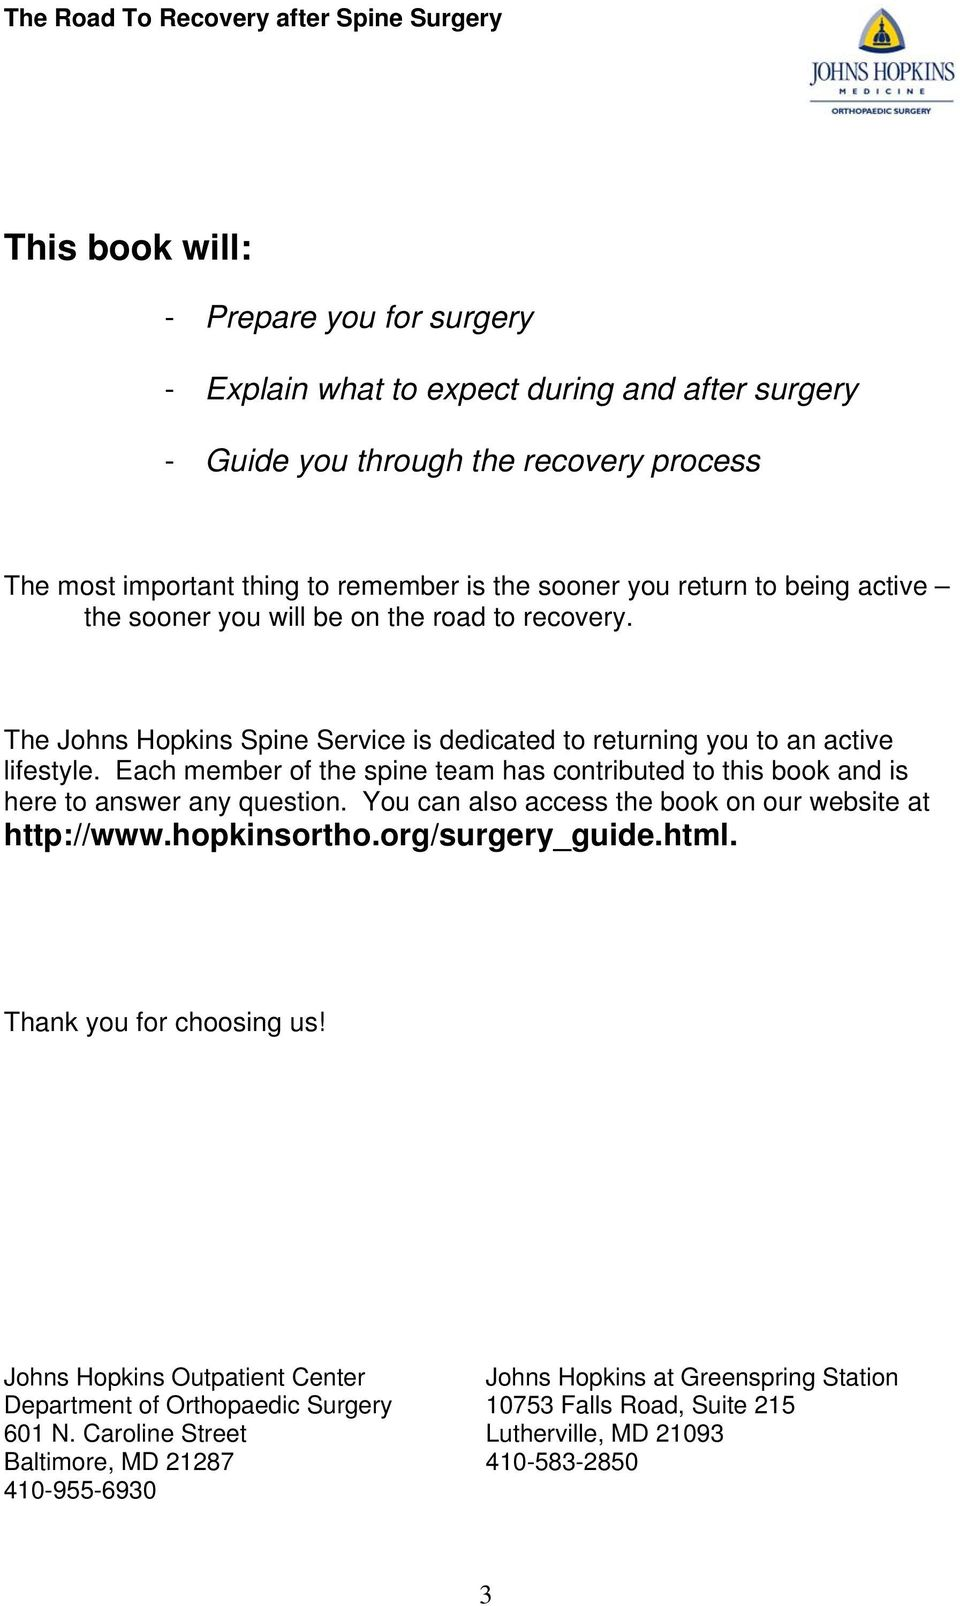 The Road To Recovery - PDF